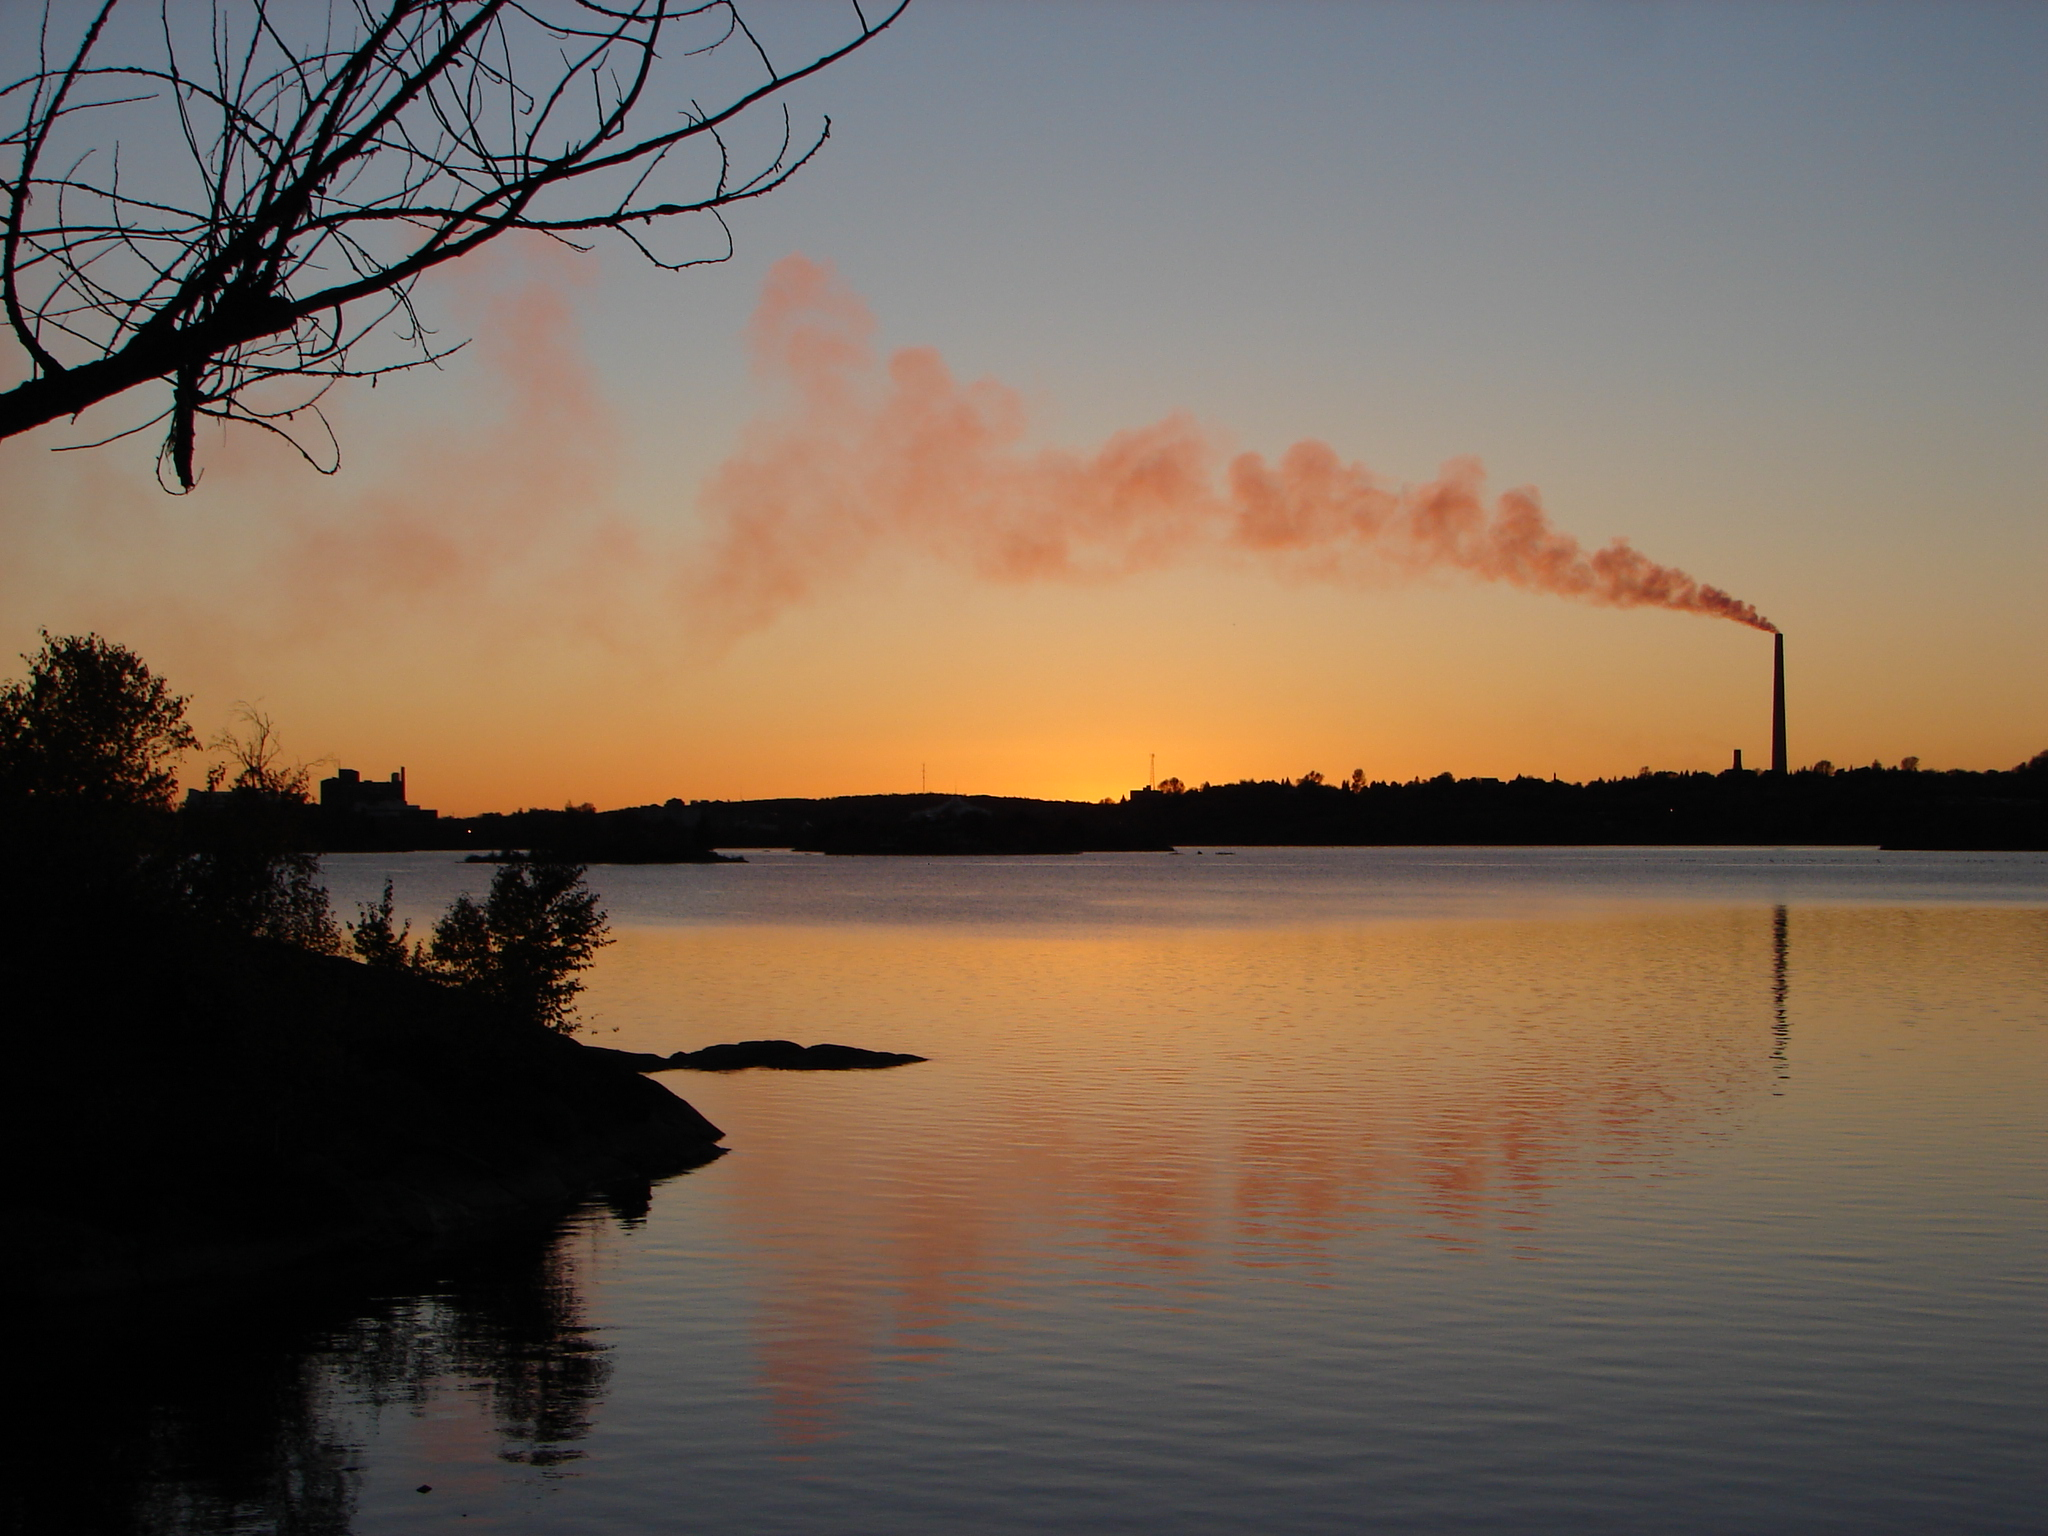 File:Sudbury sunset.JPG